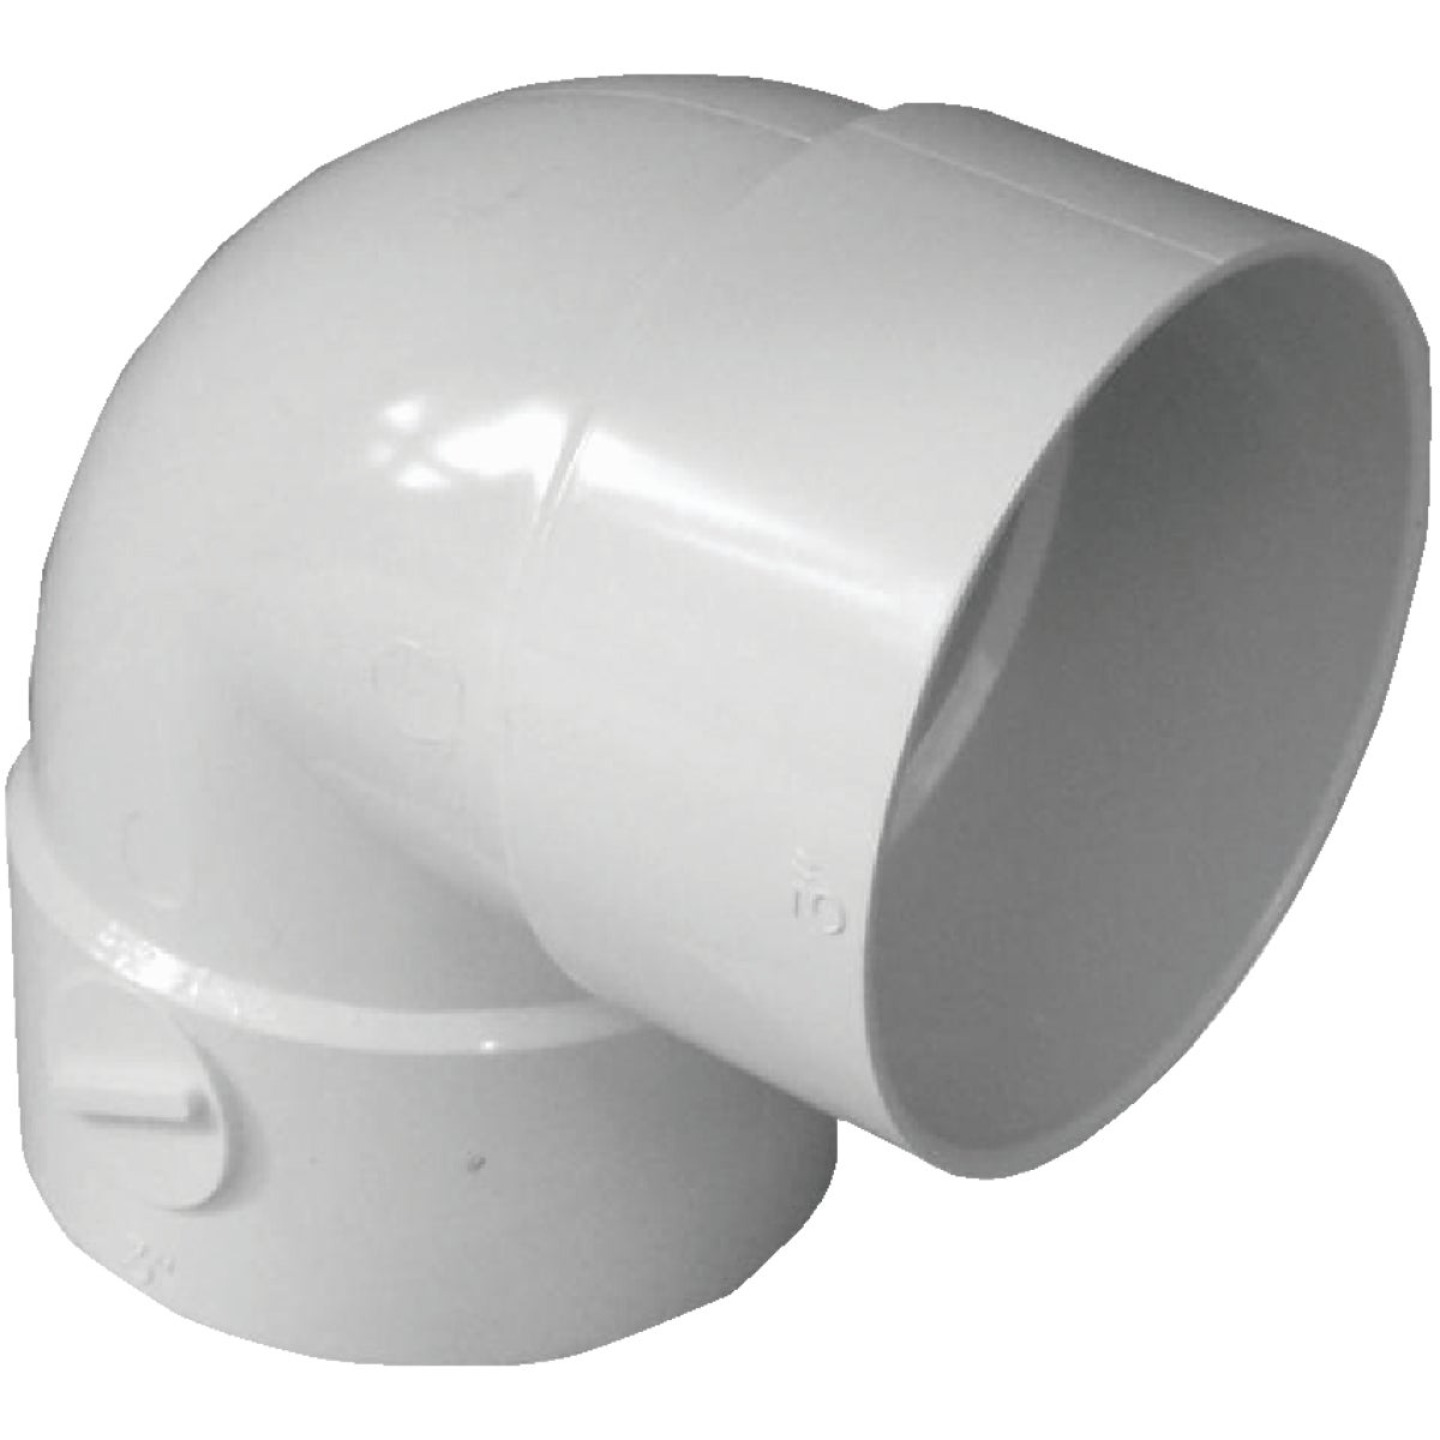 IPEX Canplas 3 In. SDR 35 90 Deg. PVC Sewer and Drain Short Turn Elbow (1/4 Bend) Image 1